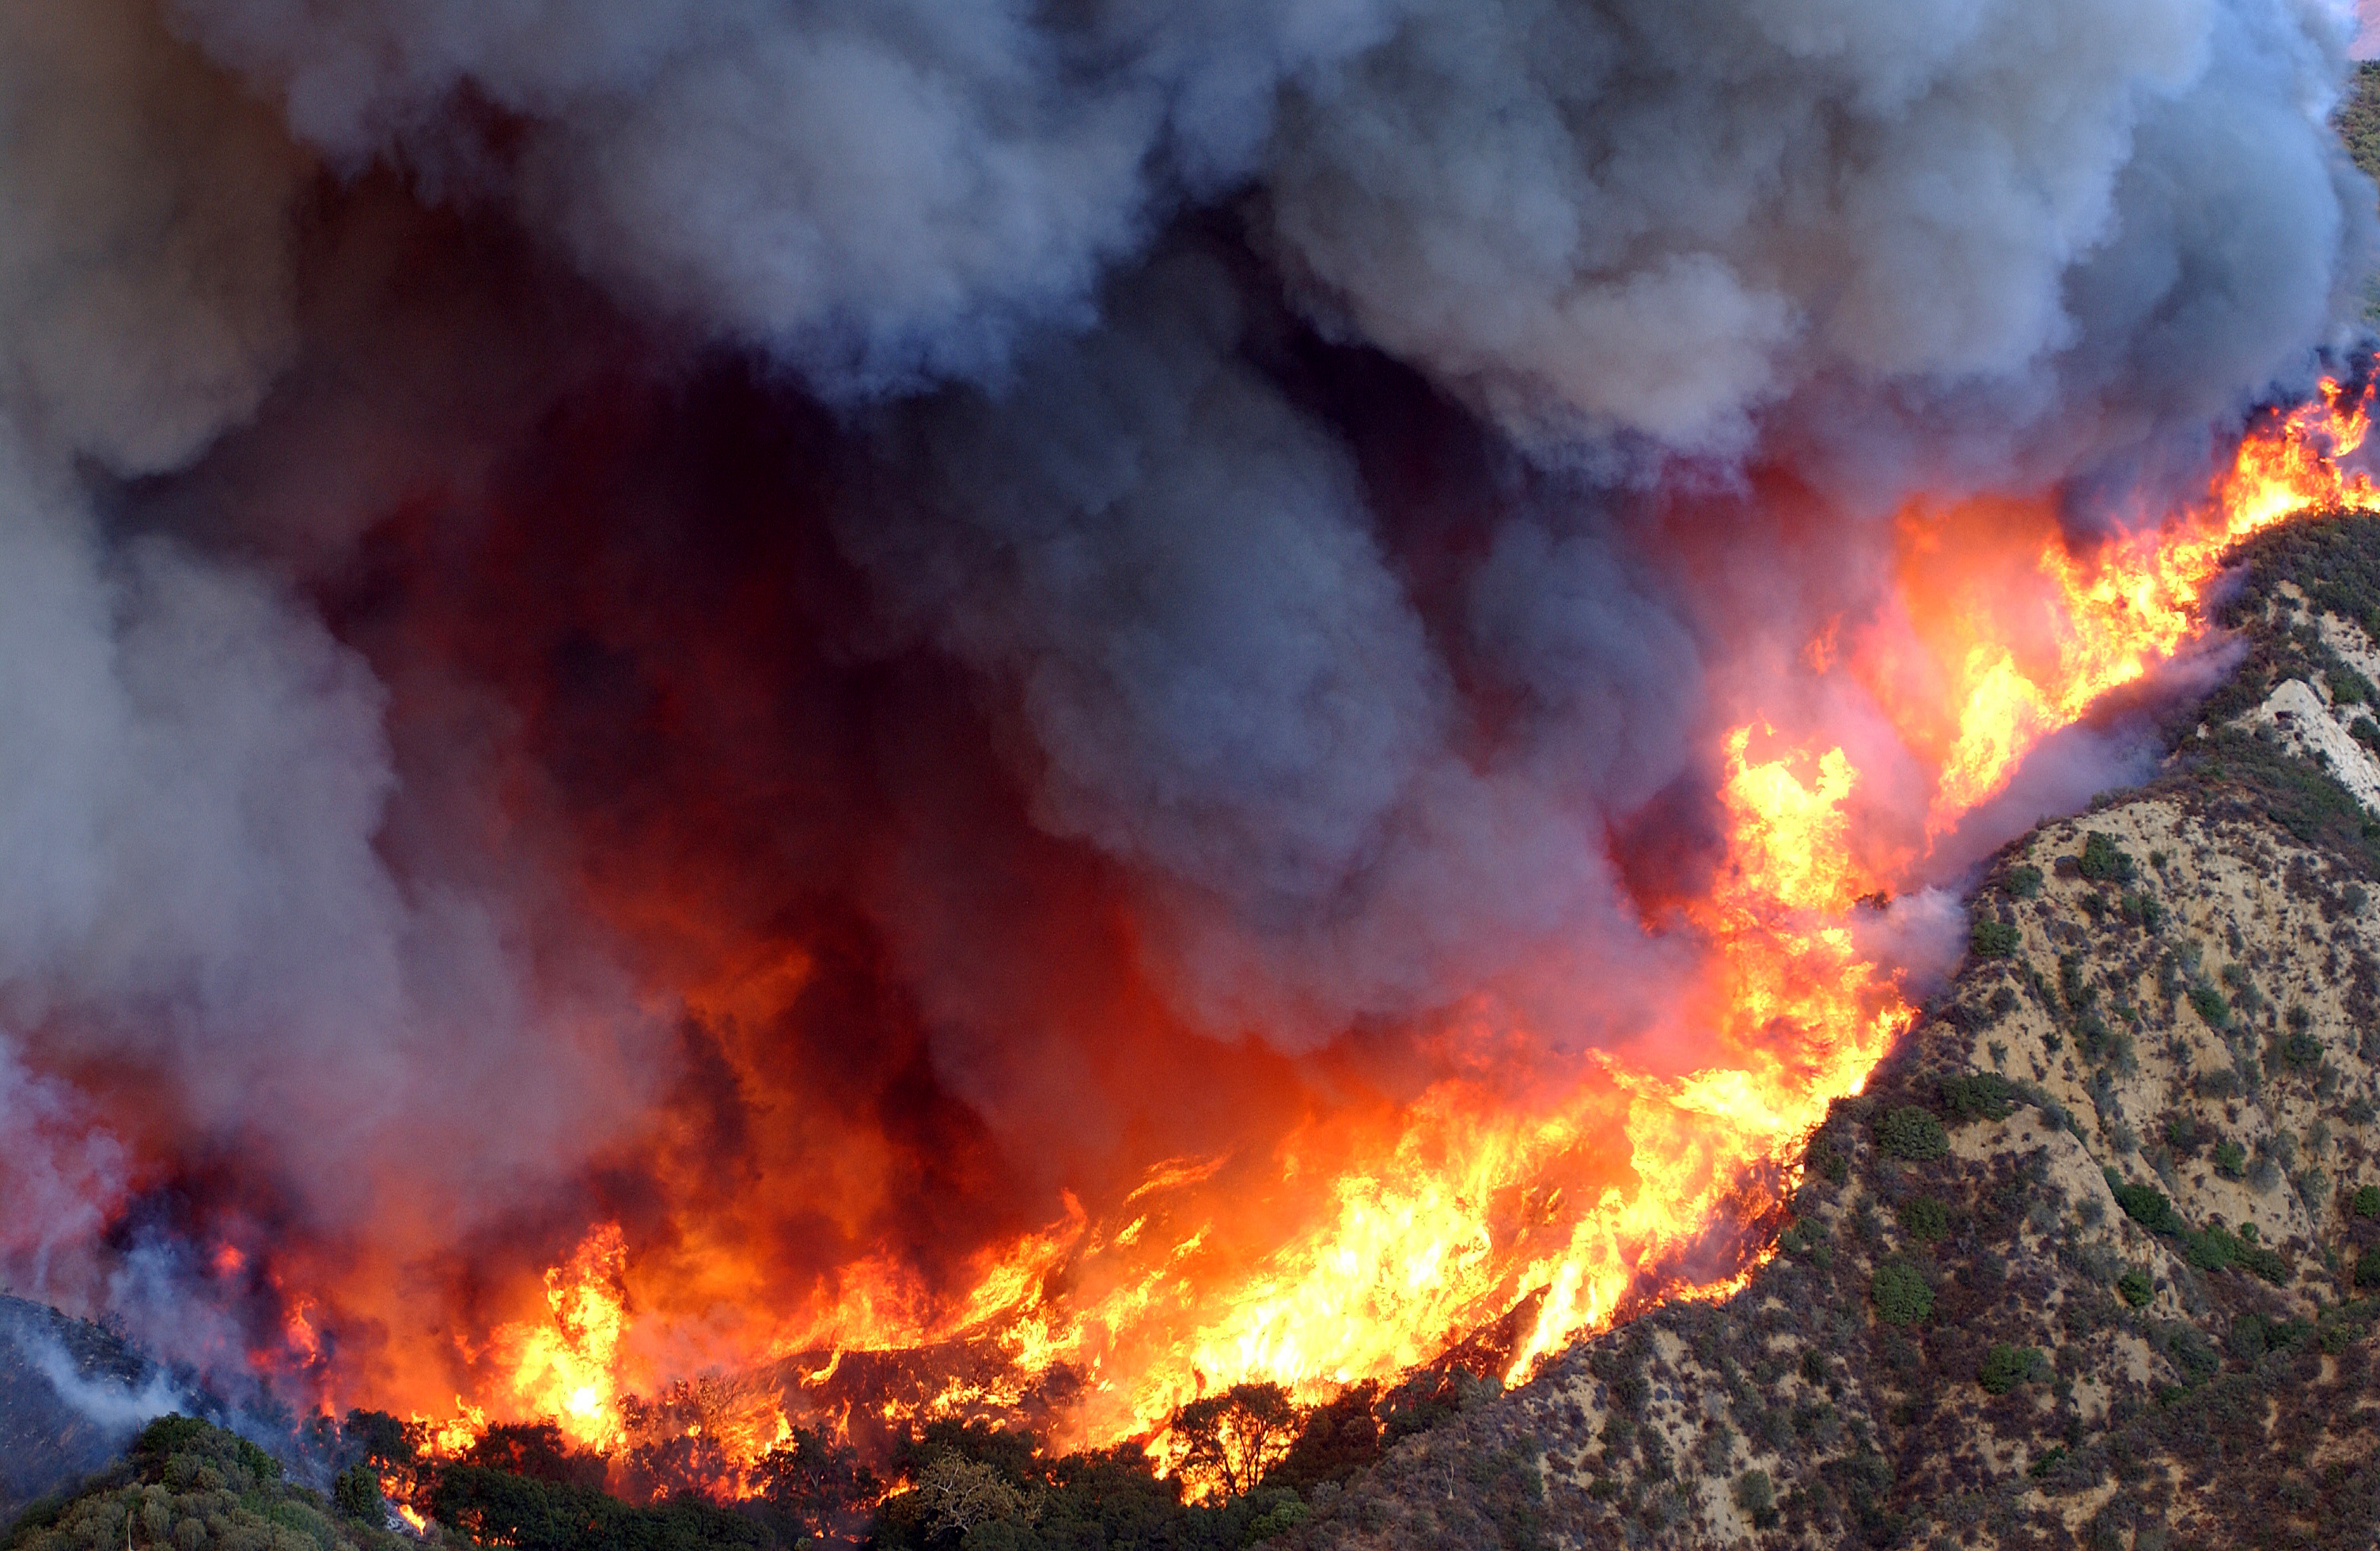 GOP fiddles with fossil fuels while Los Angeles burns